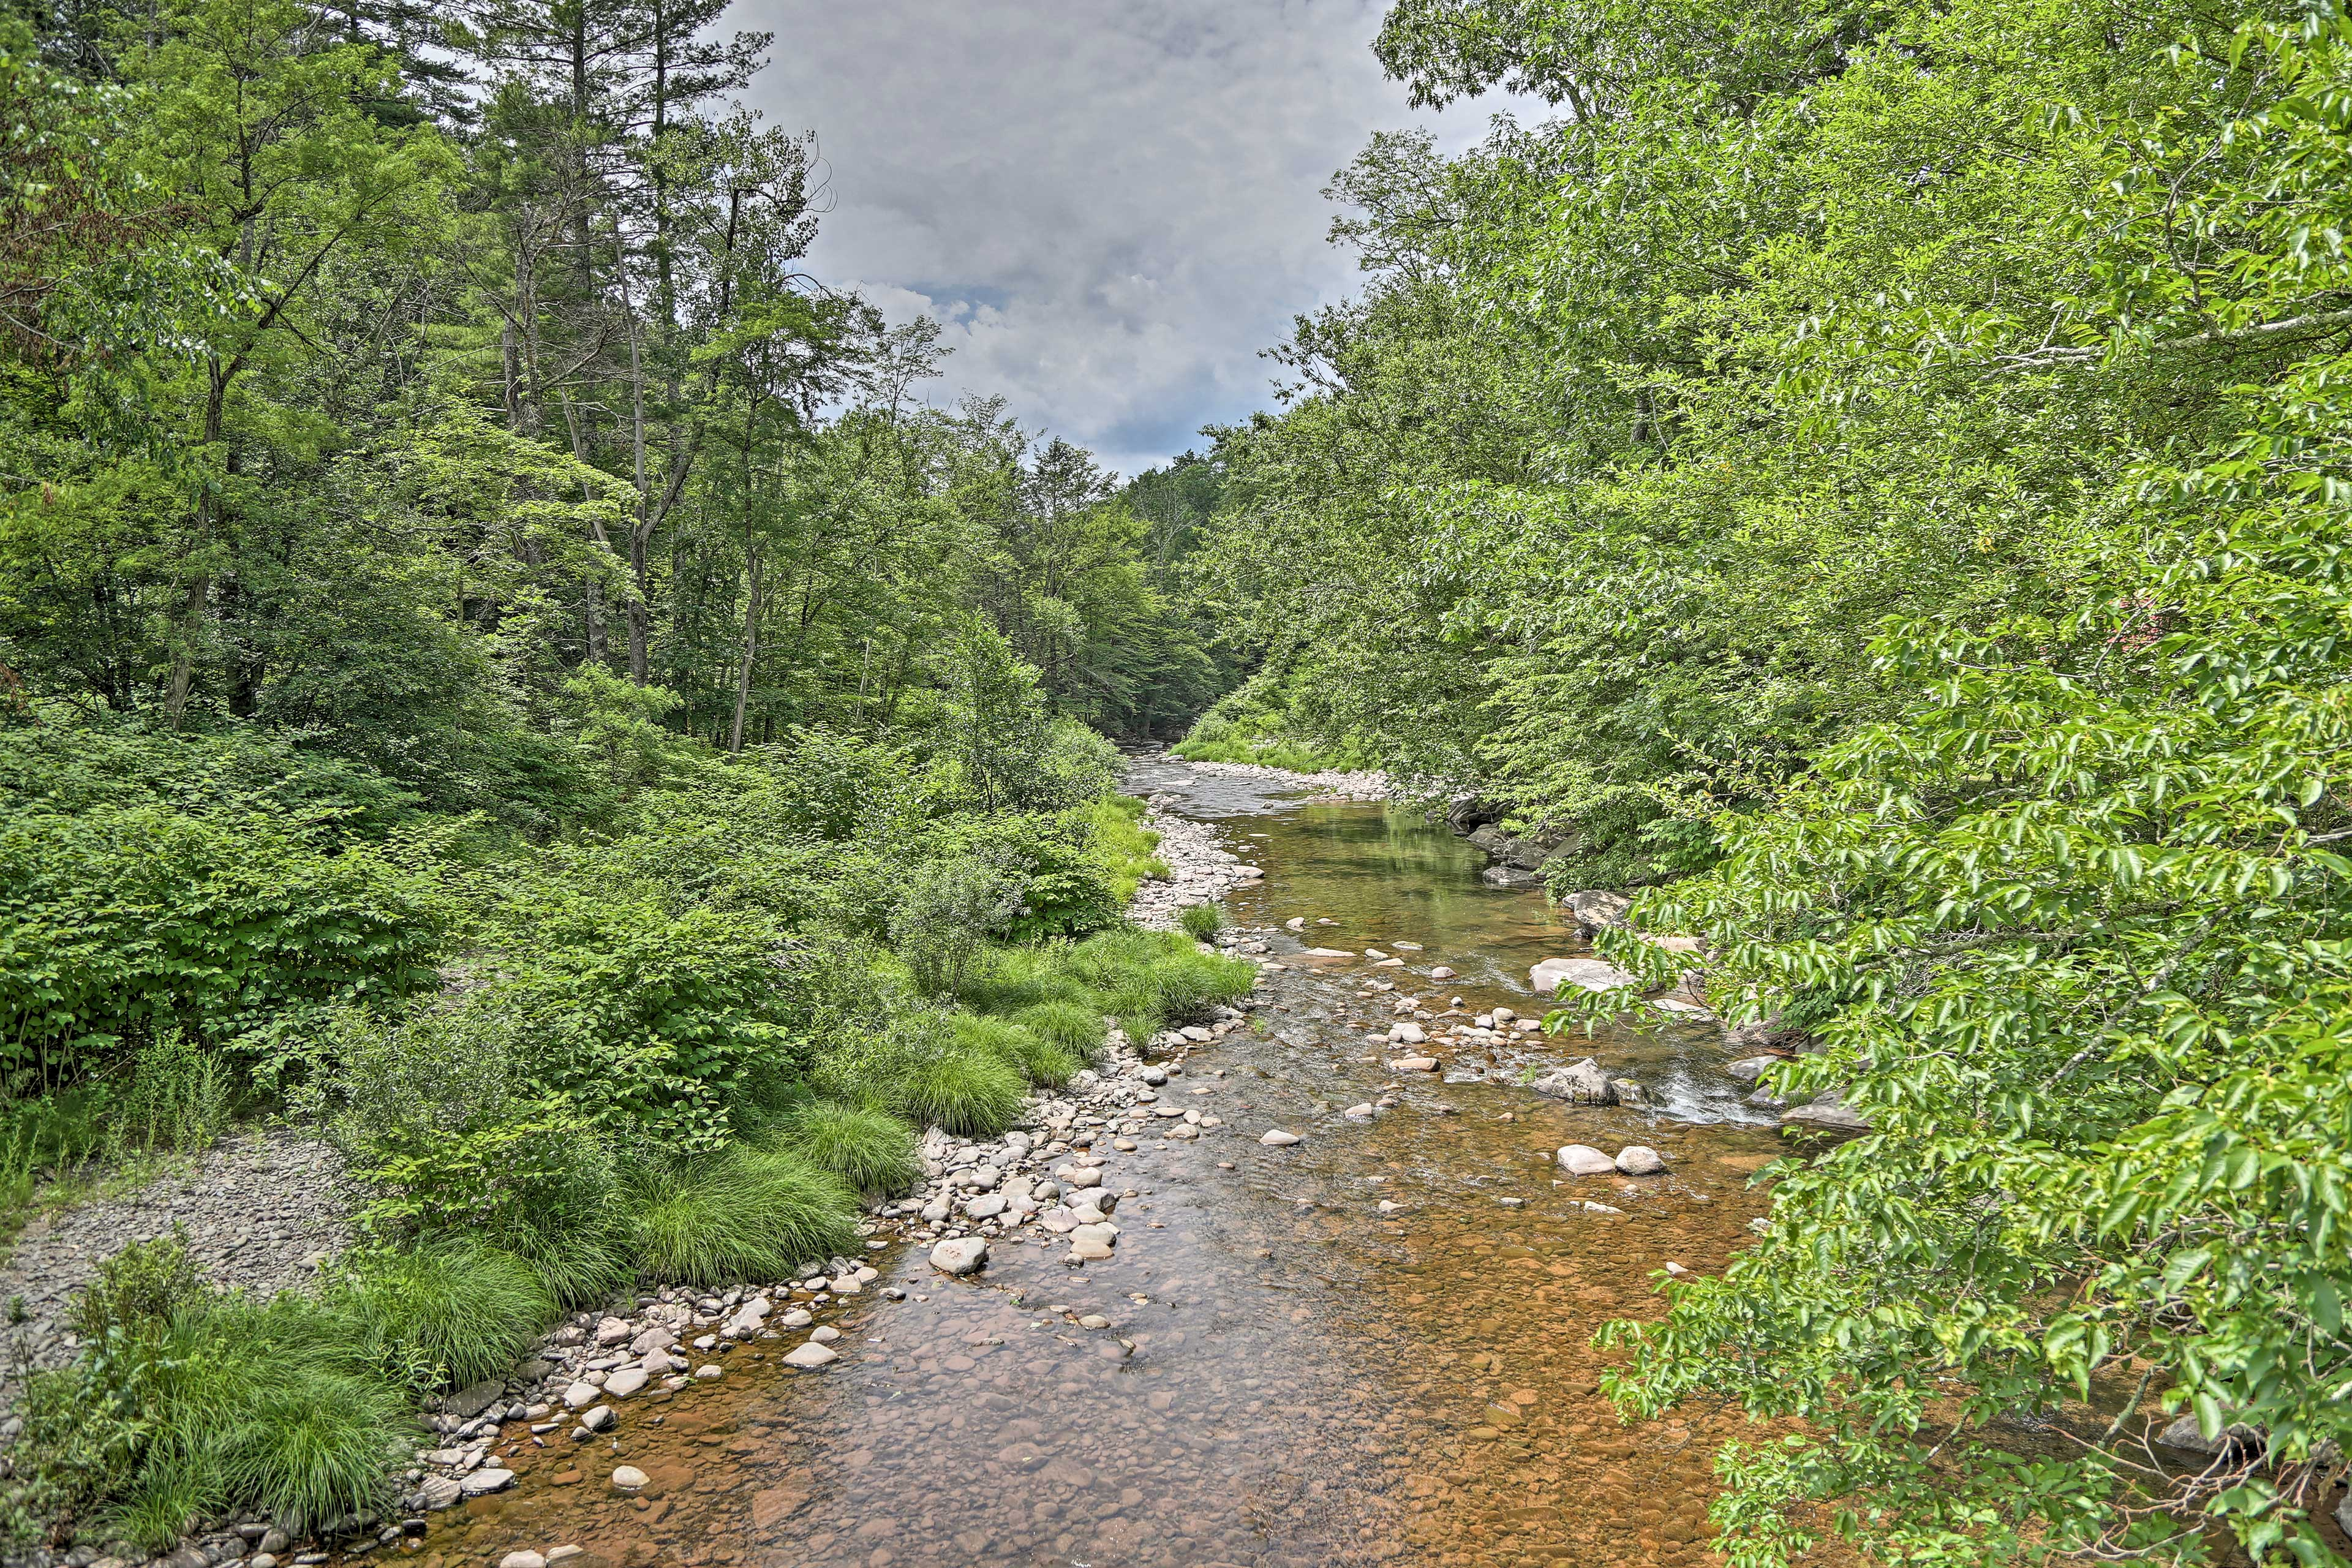 Stroll along the tranquil Stony Clove Creek to immerse yourself in nature.